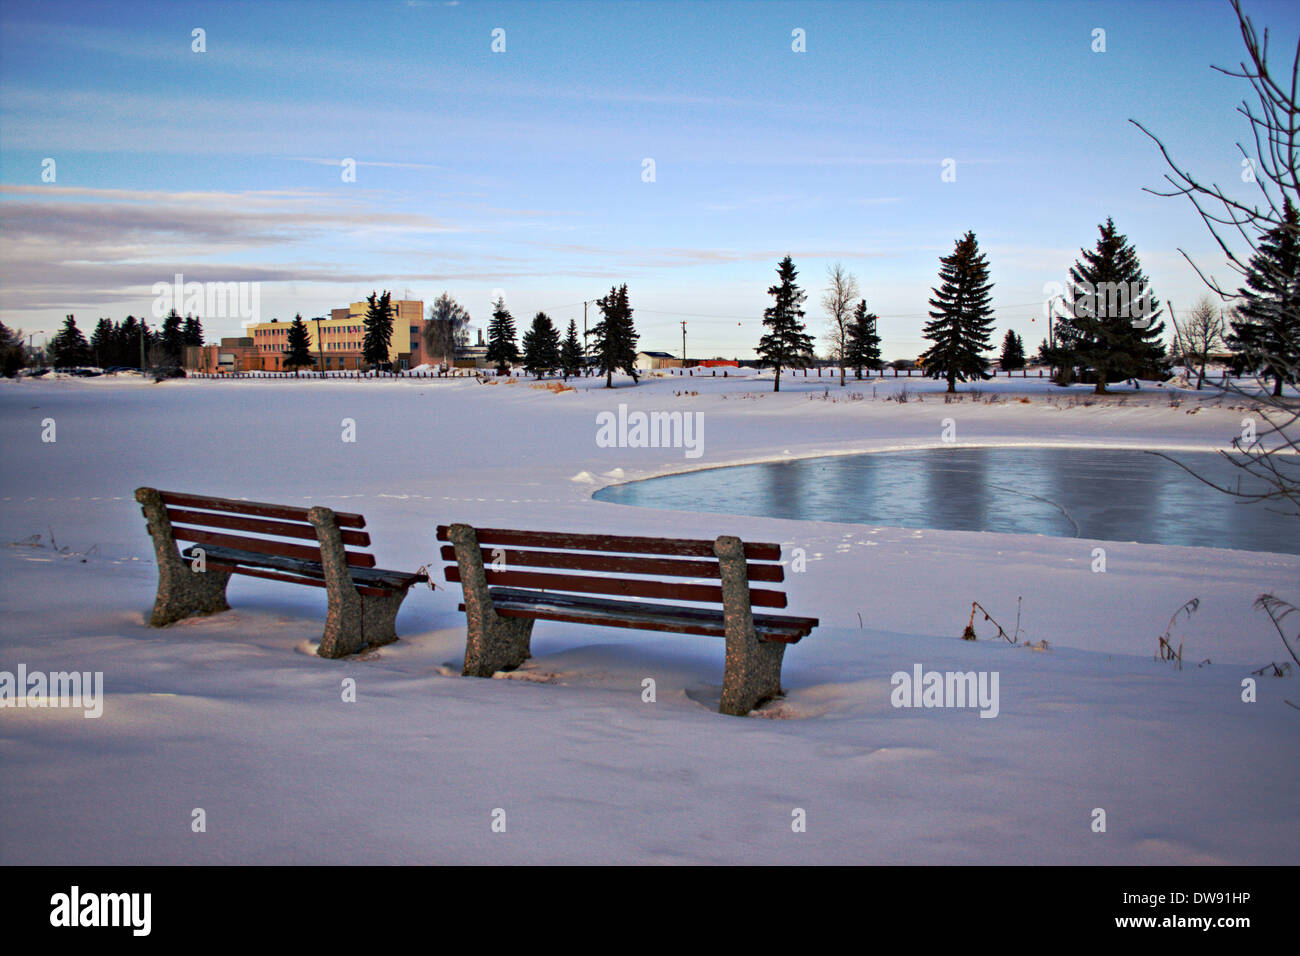 Winter Park Setting With 2 Park Benches And Frozen Ice